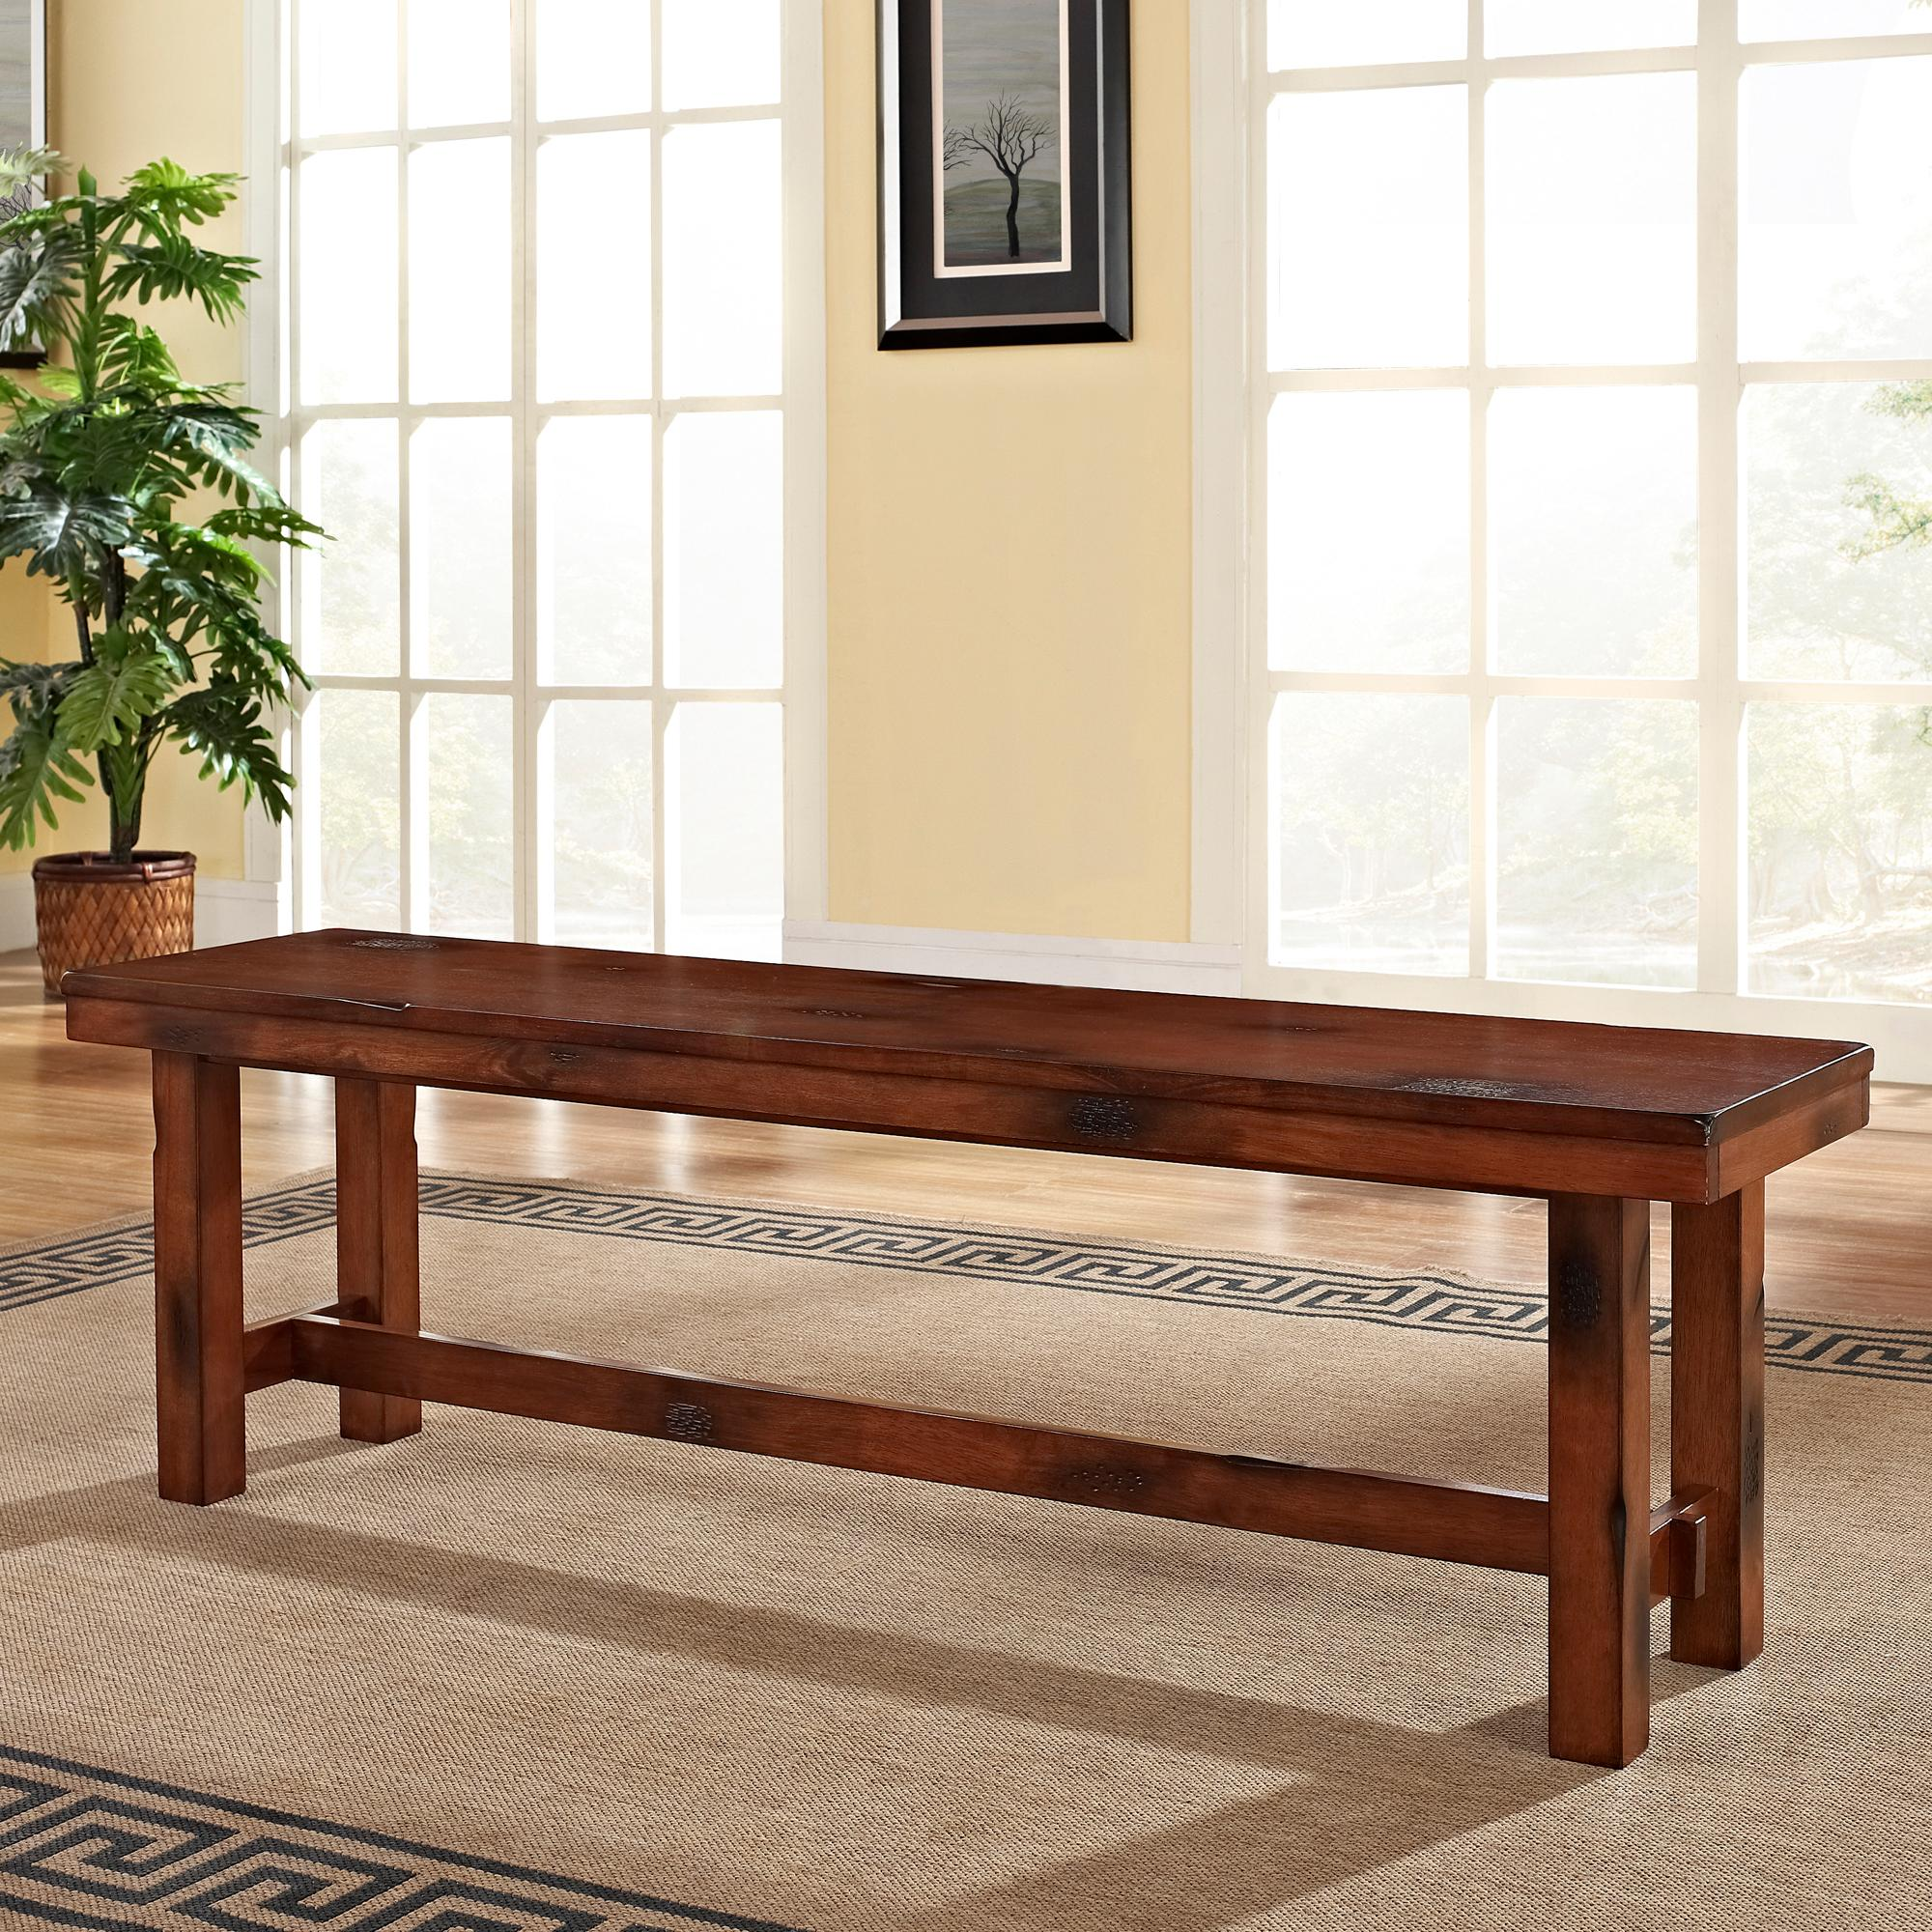 Dining Benches: WE Furniture AZBH1DO Solid Wood Dining Bench